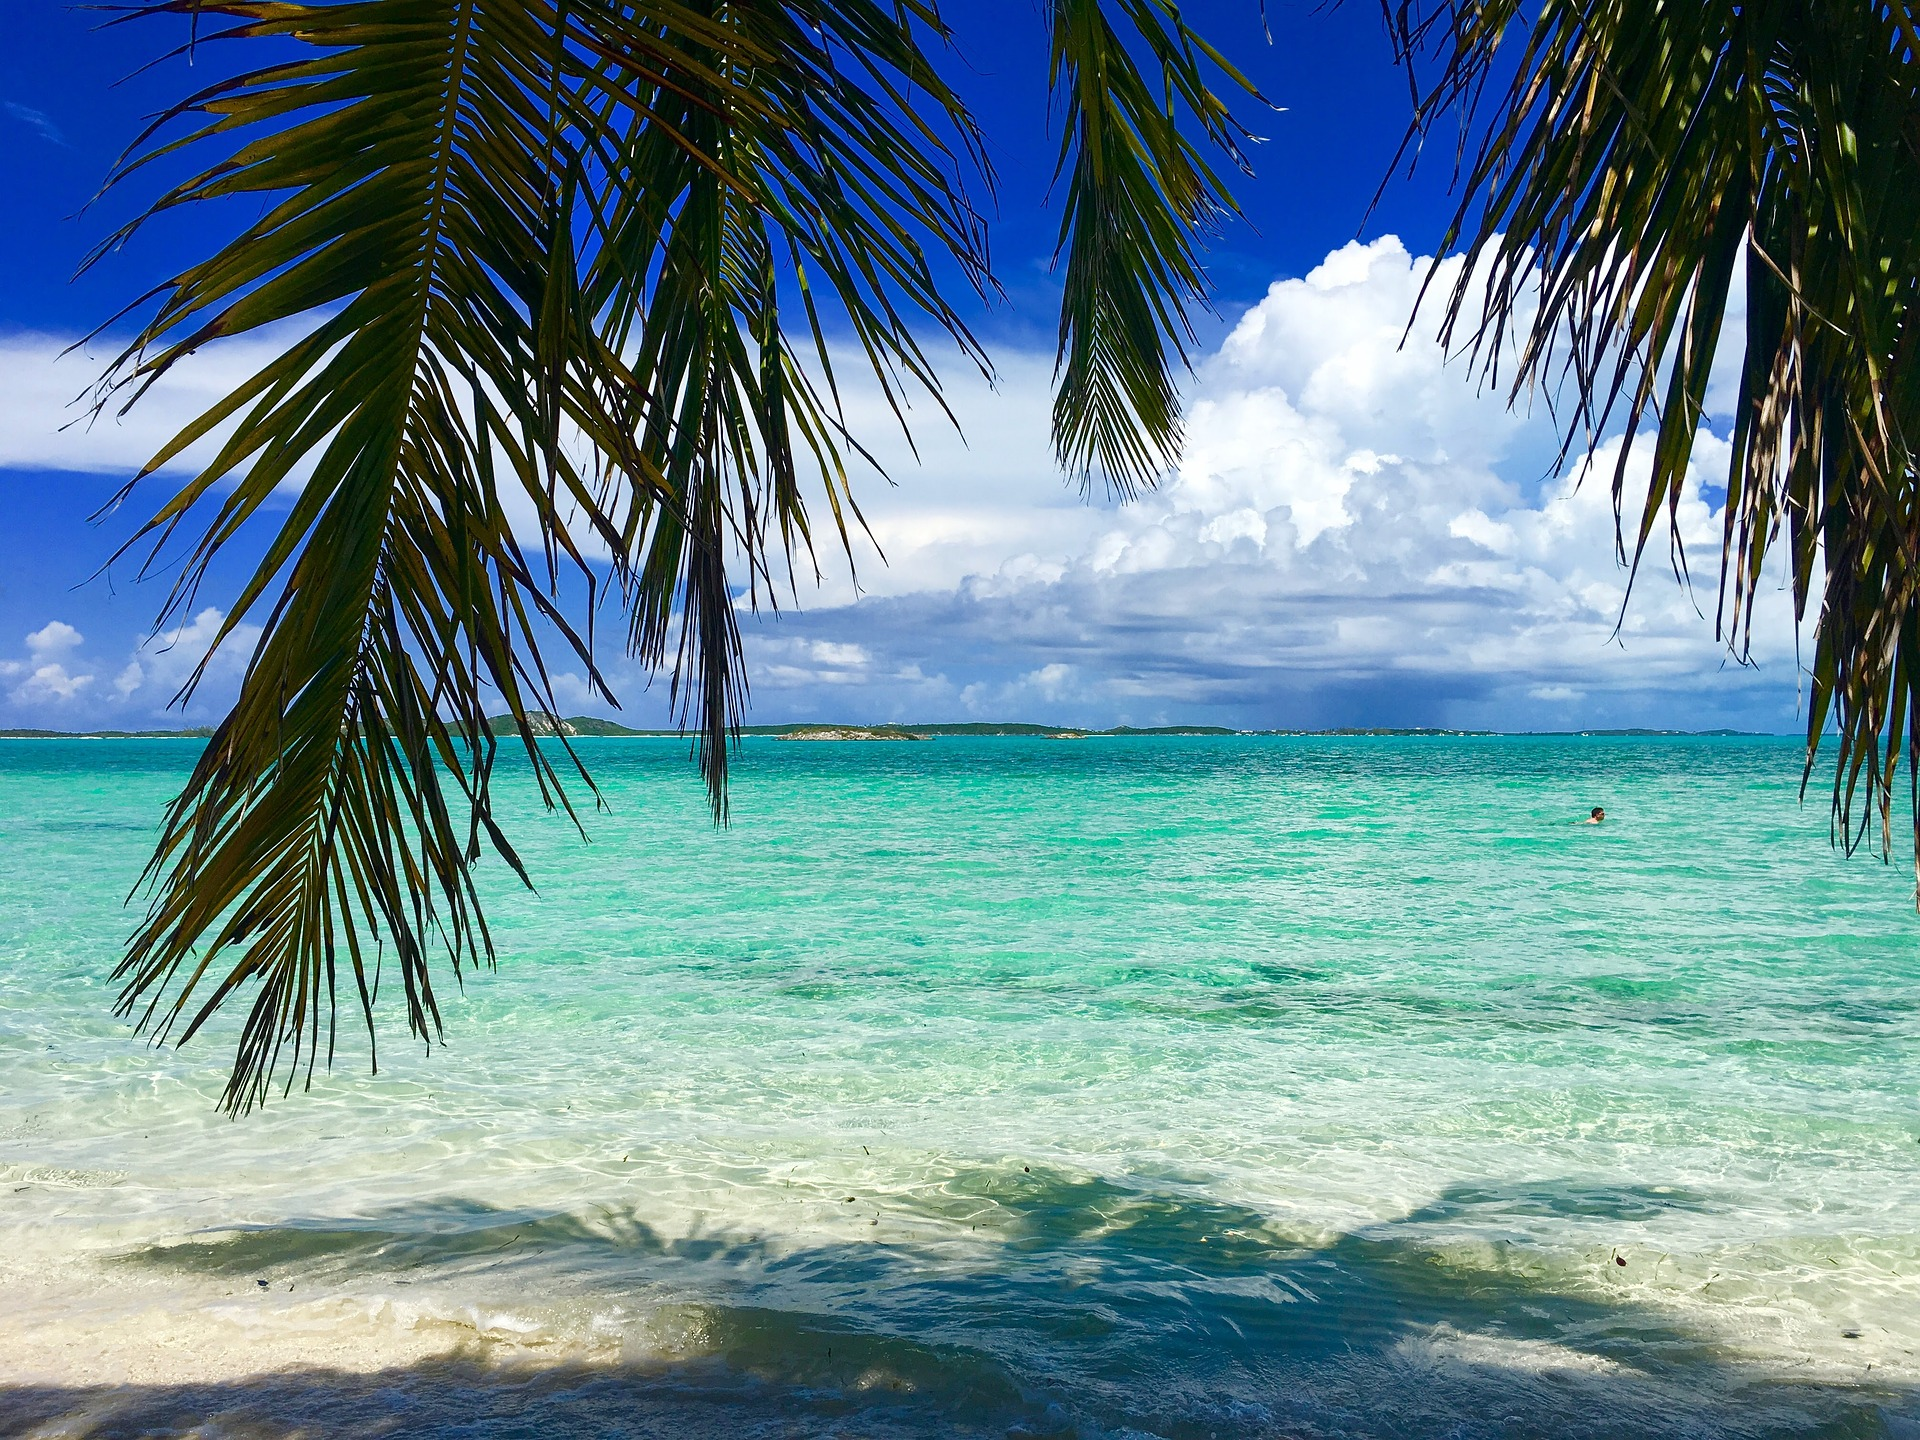 turquoise waters with palm tree hanging in the foreground in Exumas